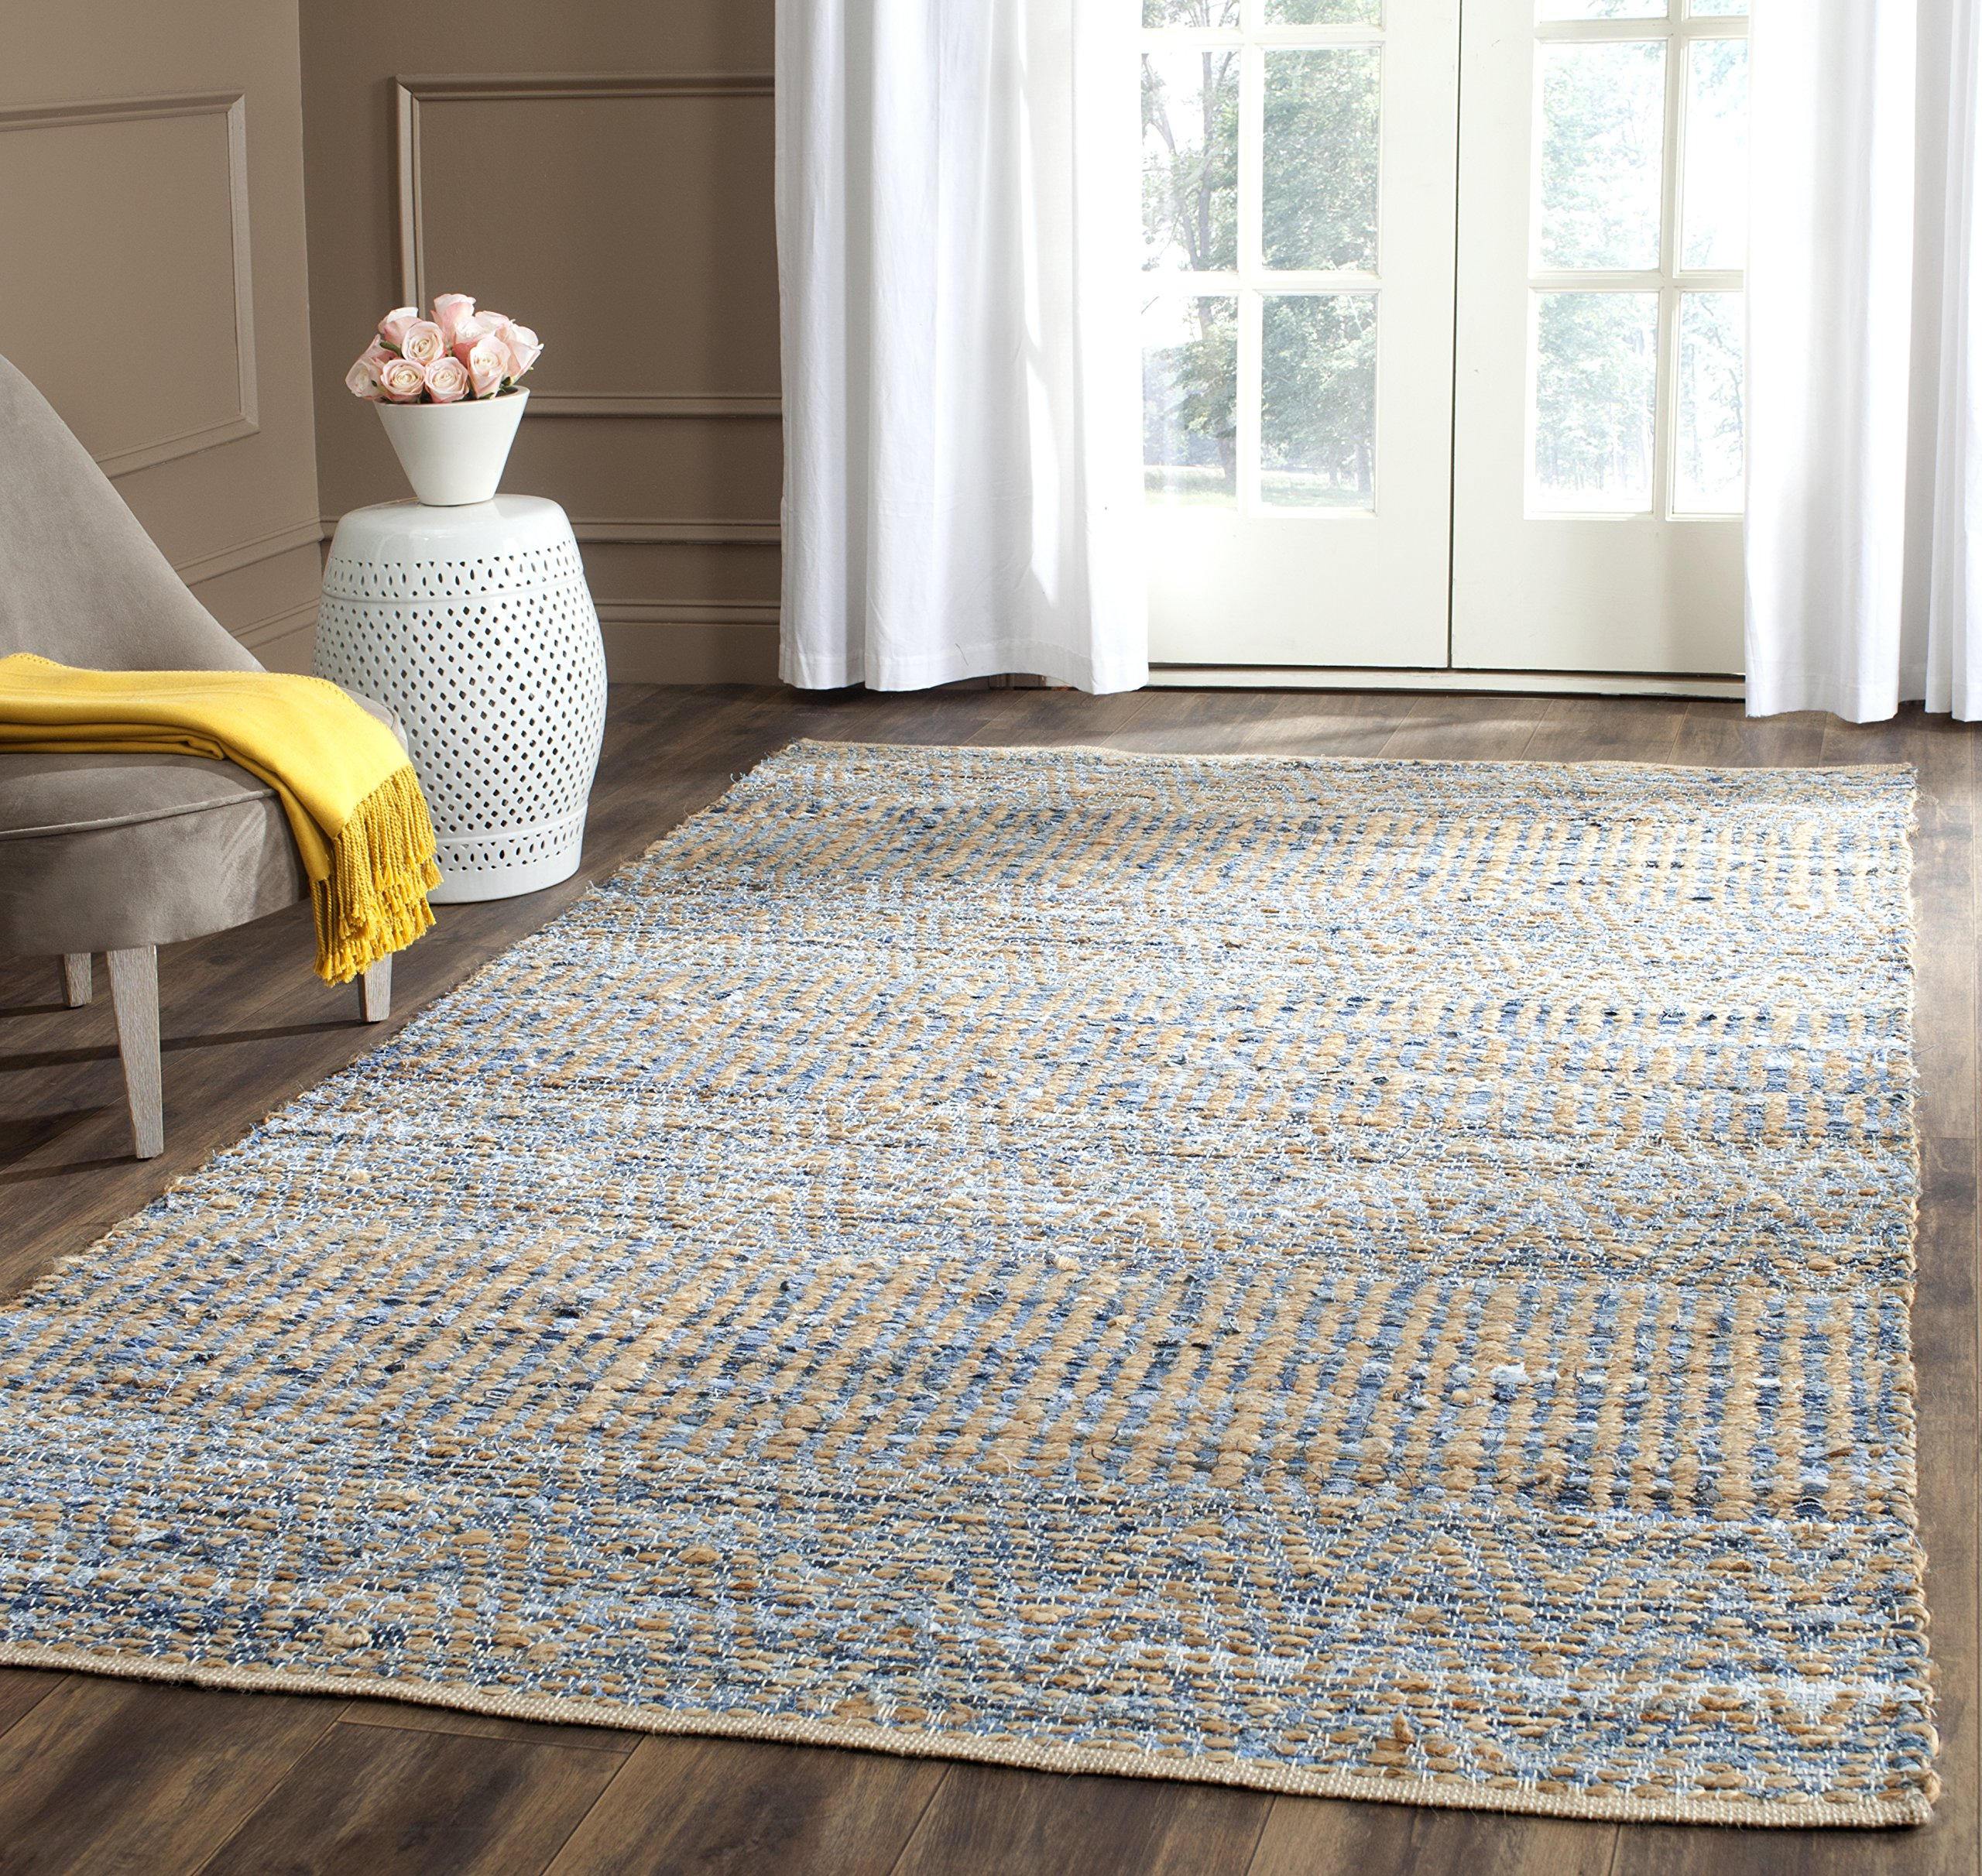 Safavieh Cape Cod Collection CAP353A Hand Woven Flatweave Natural and Blue Jute Area Rug (5' x 8') by Safavieh